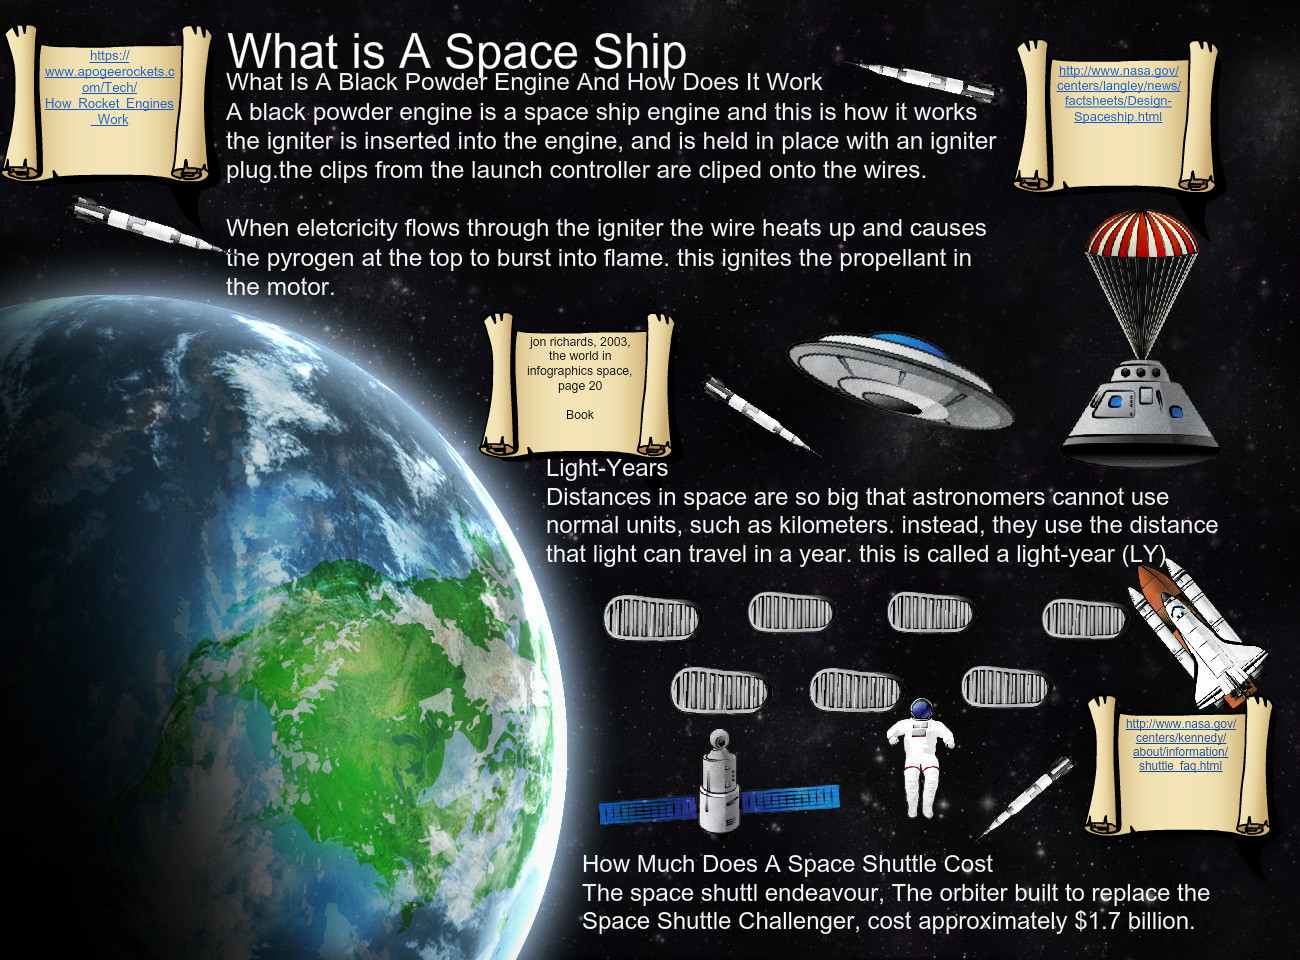 What is a space ship